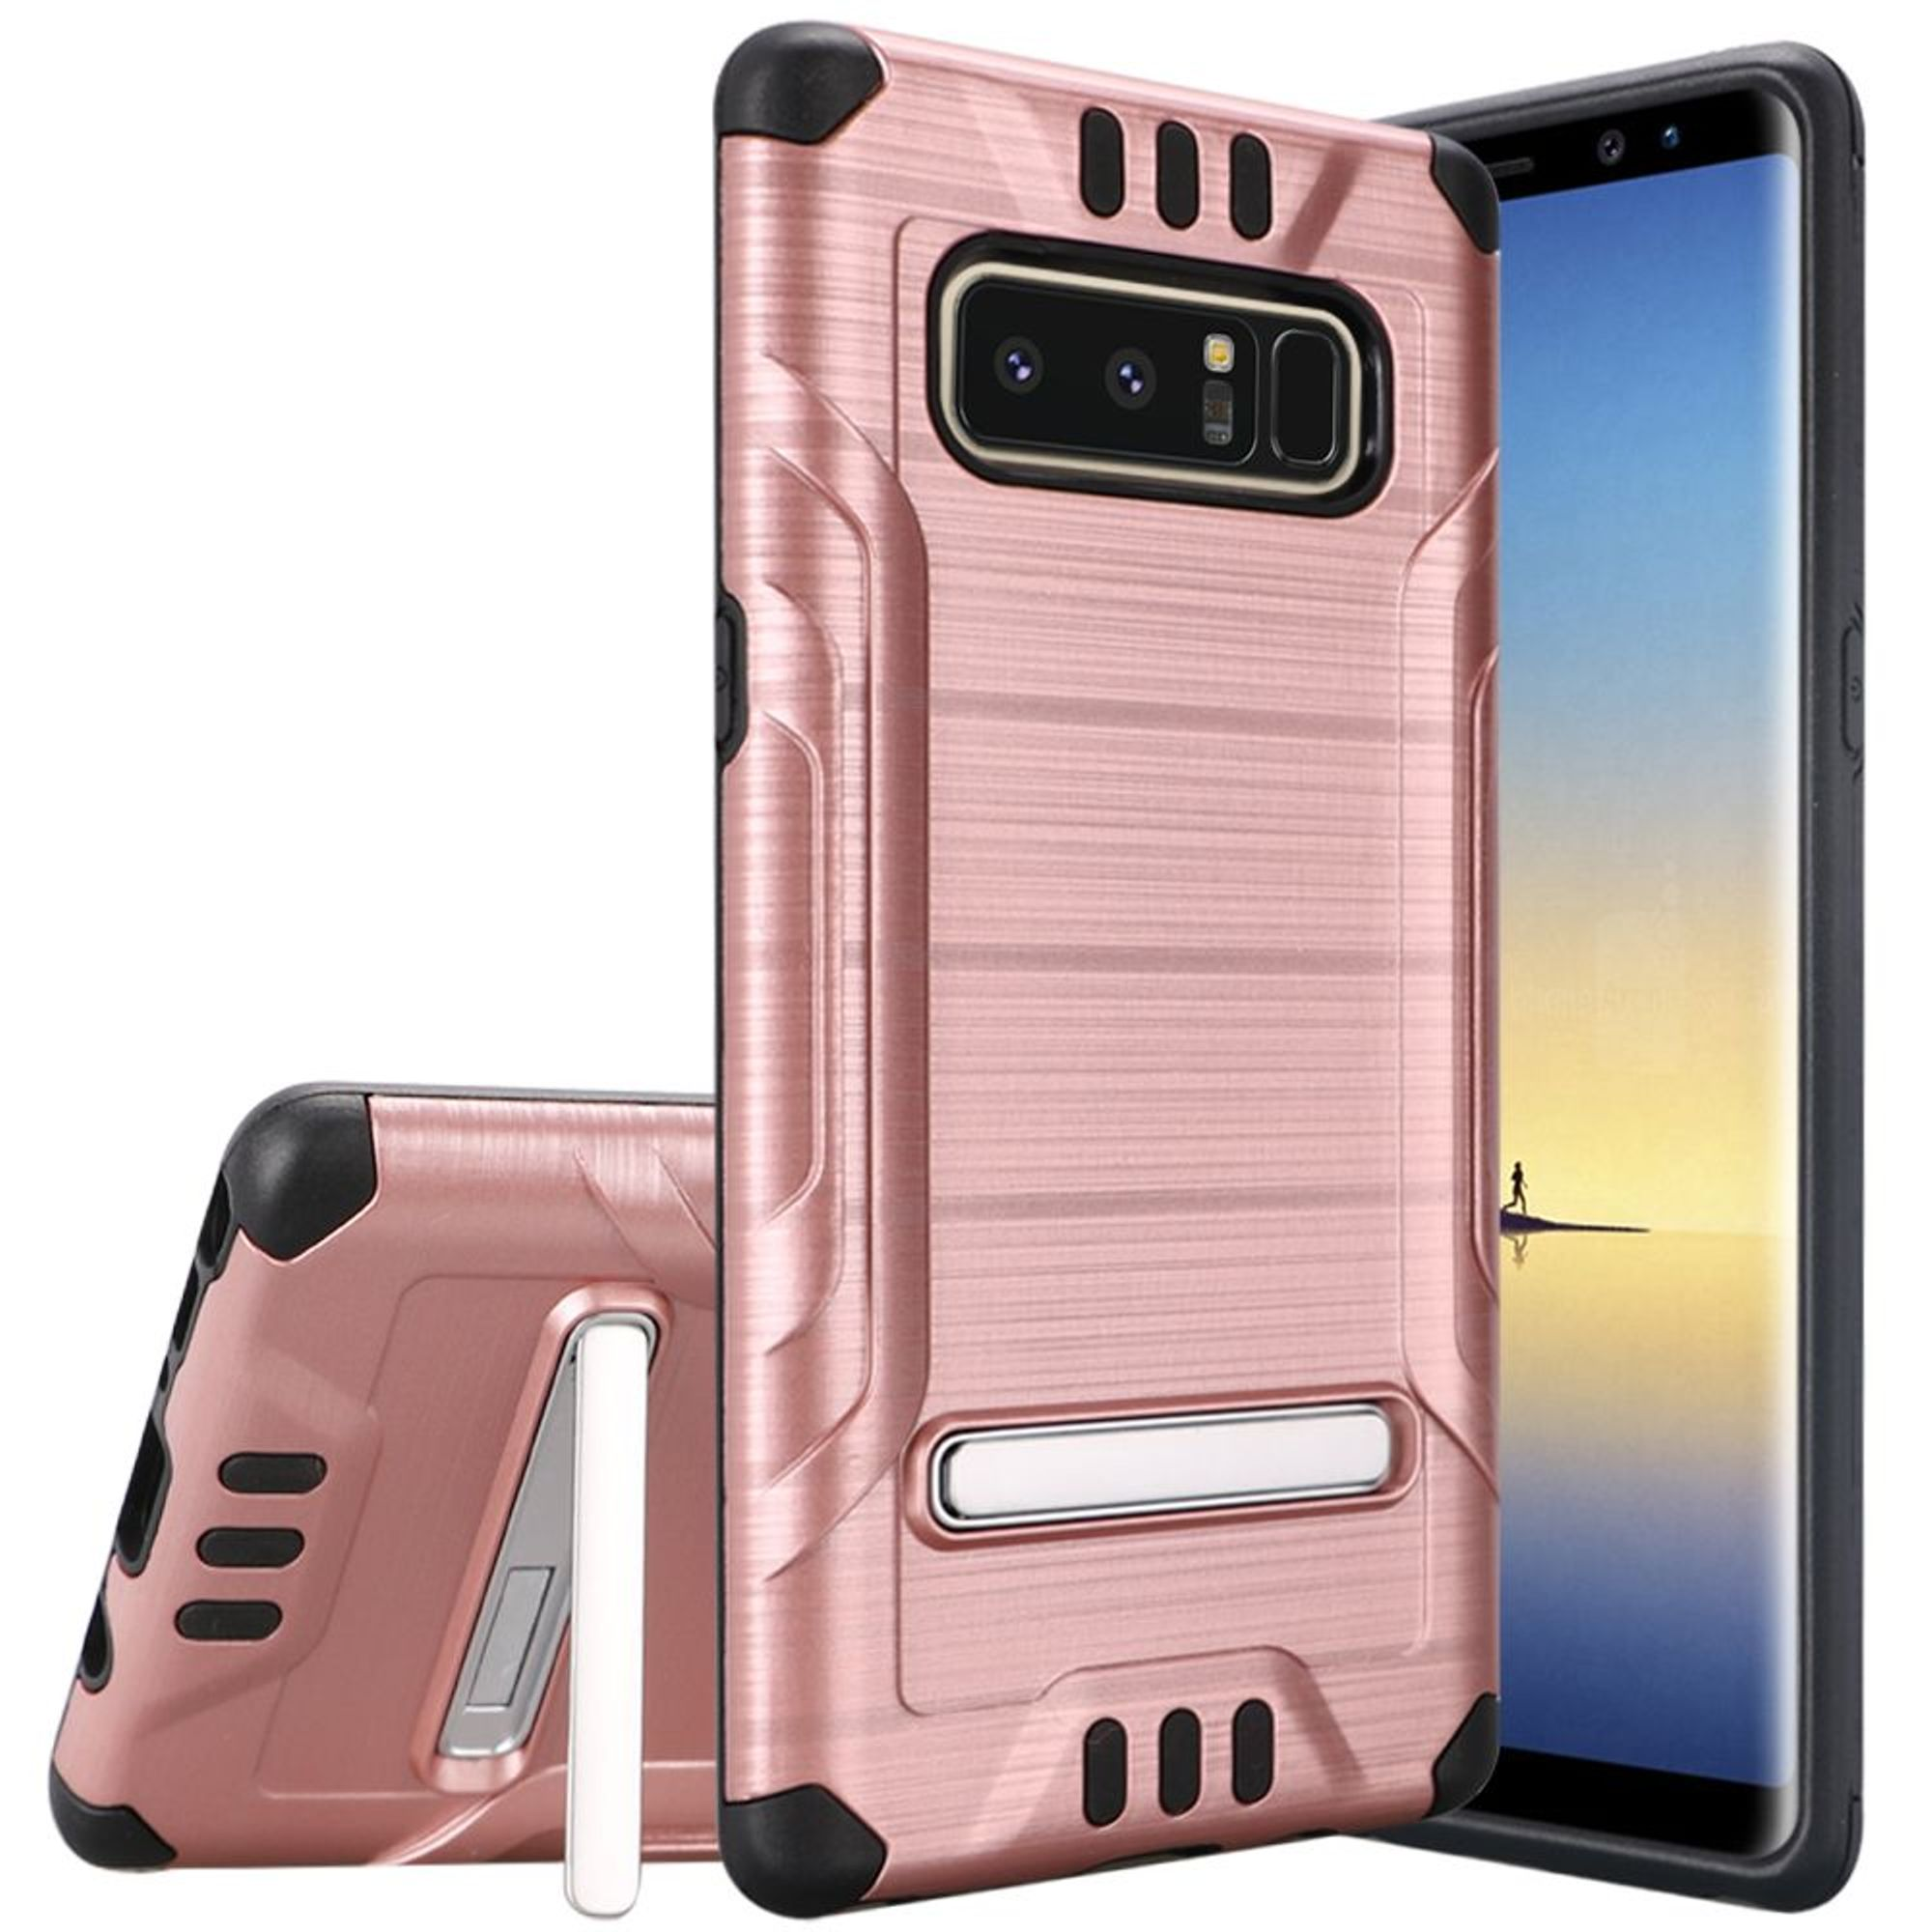 HR Wireless Shockproof Dual Layer Hybrid Stand Brushed Hard Plastic/Soft TPU Rubber Case Cover For Samsung Galaxy Note 8, Rose Gold/Black